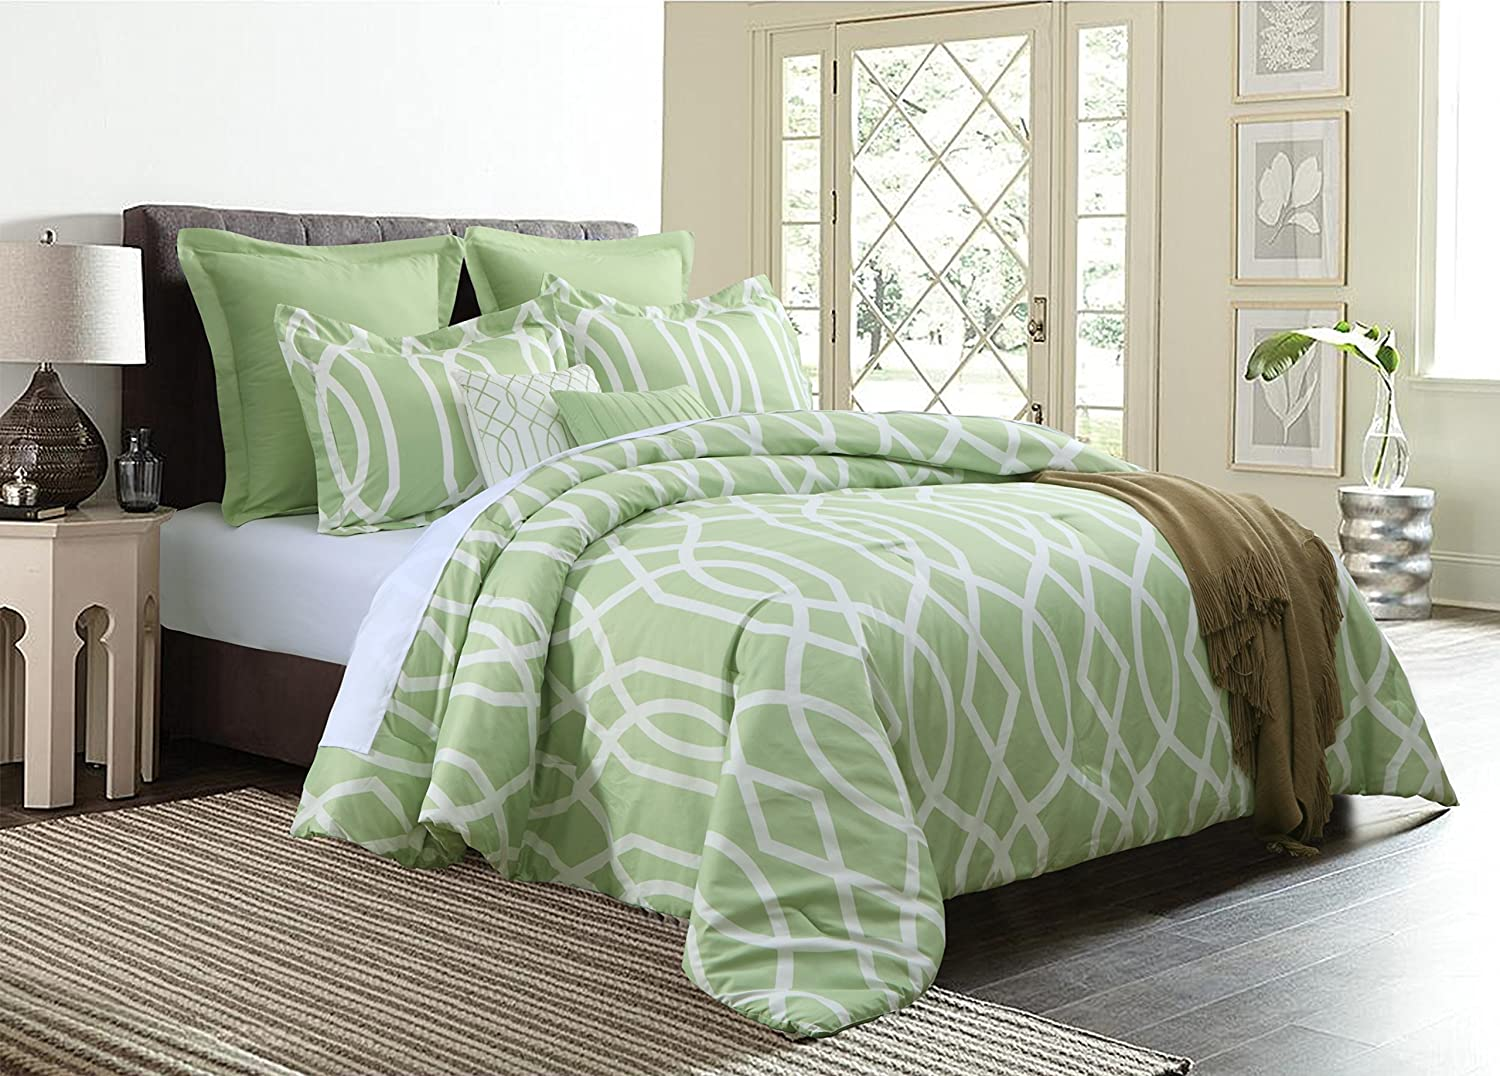 Anbu 7-Piece Comforter Set Geometric Bedding - Sage Green